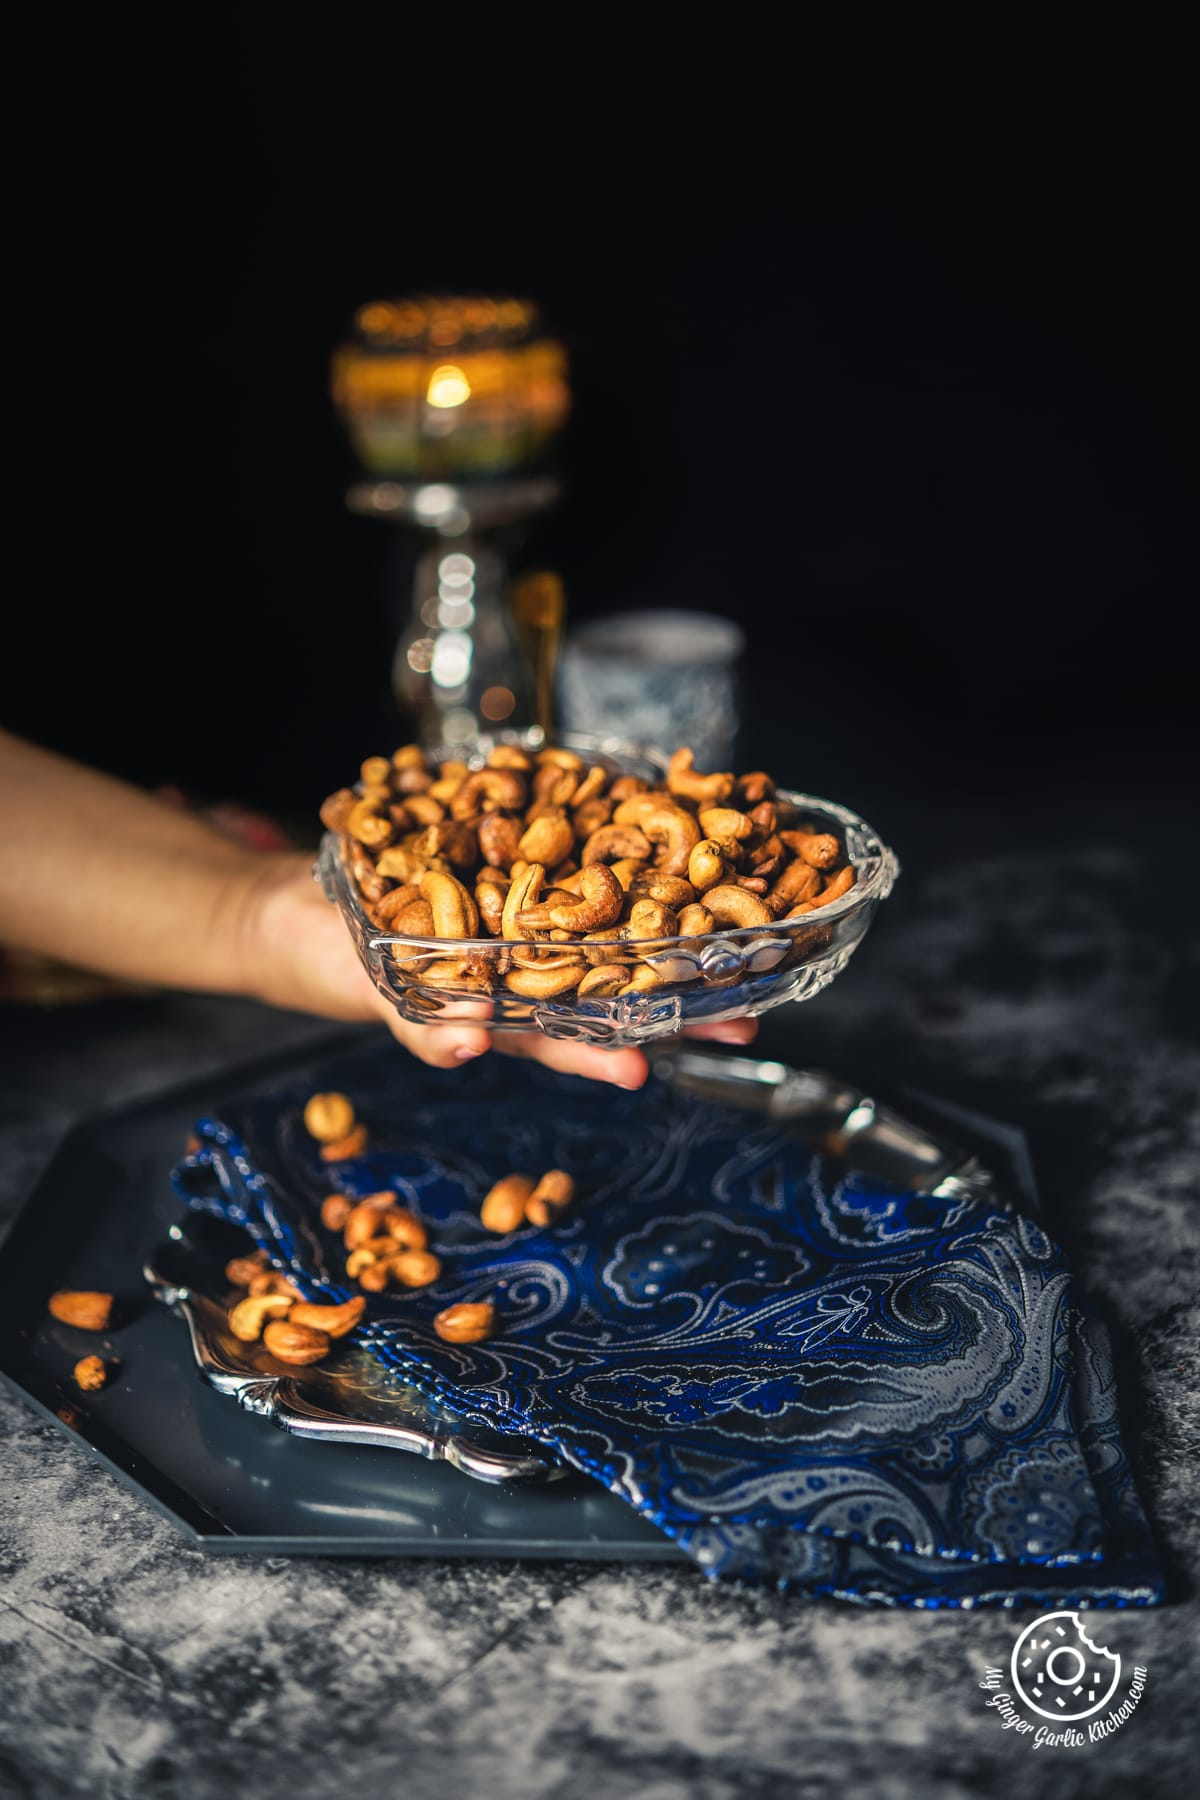 a hand holding masala kaju (spicy roasted cashew nuts) served in a heart shape transparent bowl